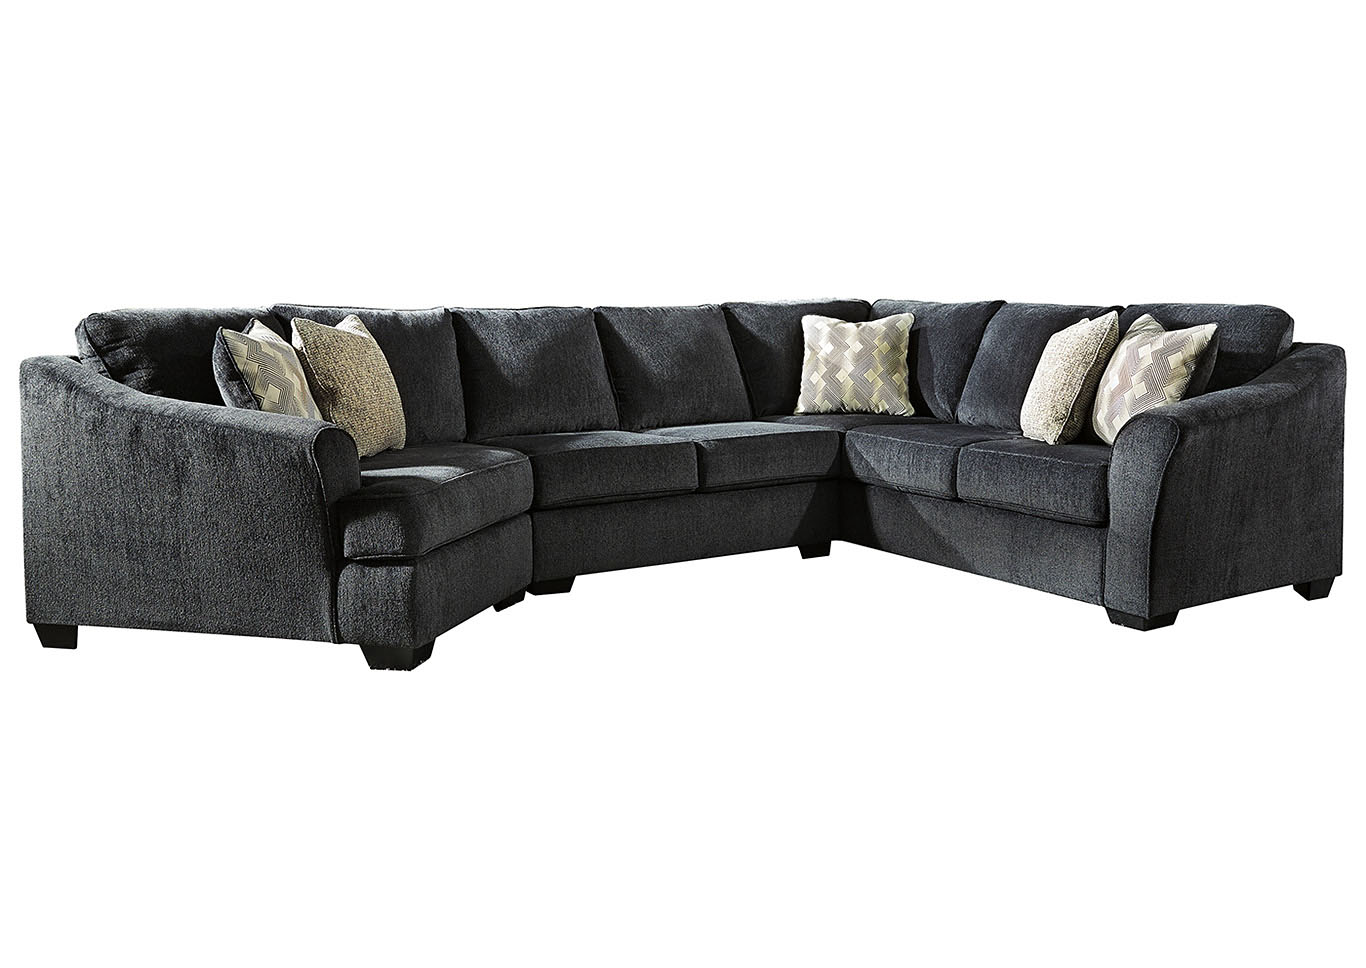 Eltmann Slate 3 Piece Sectional w/LAF Cuddler,Signature Design By Ashley